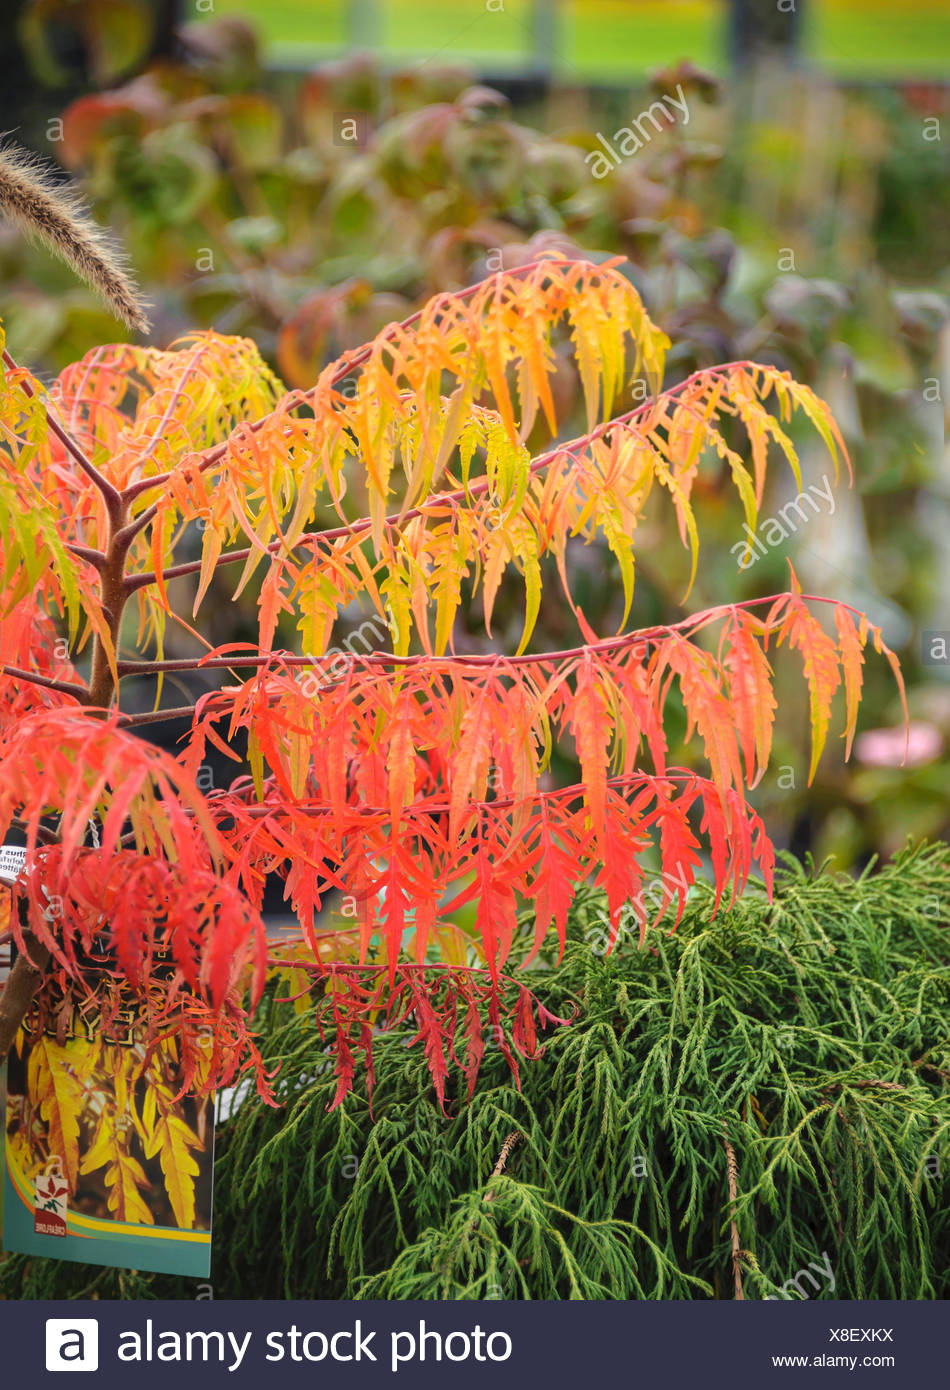 staghorn sumach, stag's horn sumach (Rhus typhina 'Tiger Eyes', Rhus typhina Tiger Eyes, Rhus hirta), cultivar Tiger Eyes - Stock Image